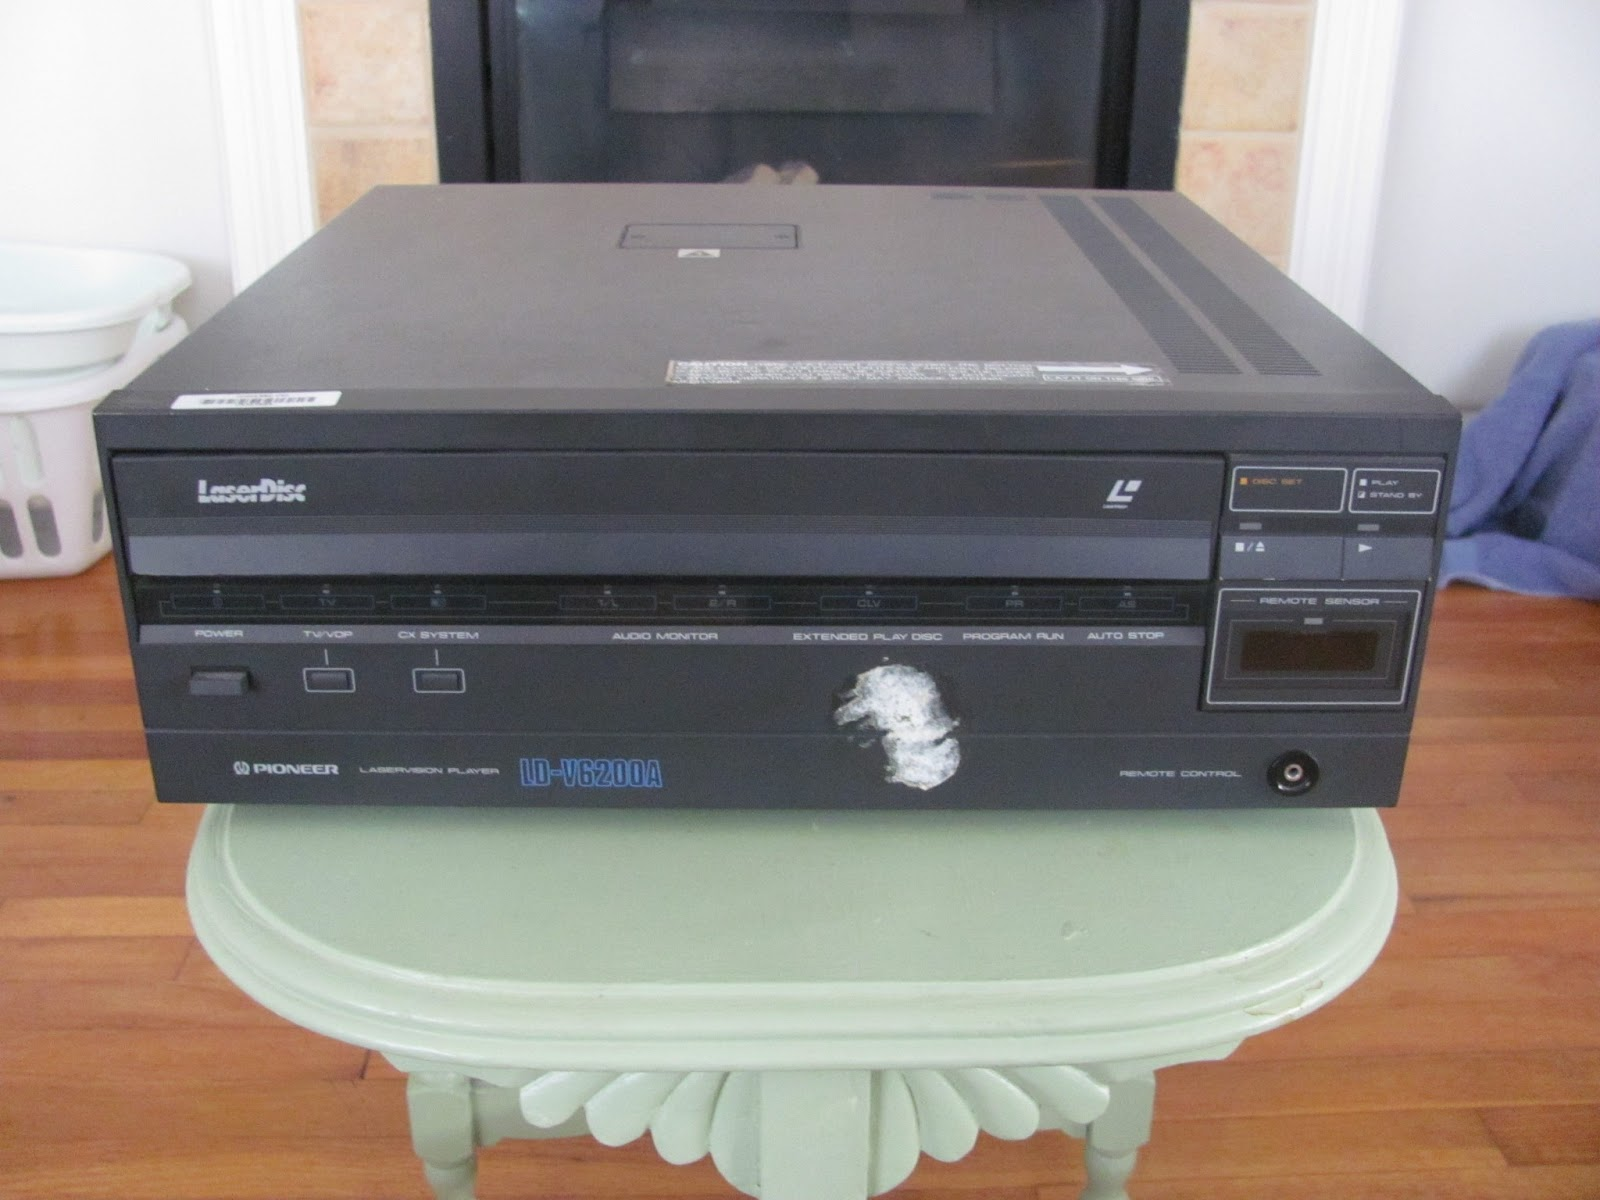 Laserdisc player on display before being sold on Craigslist